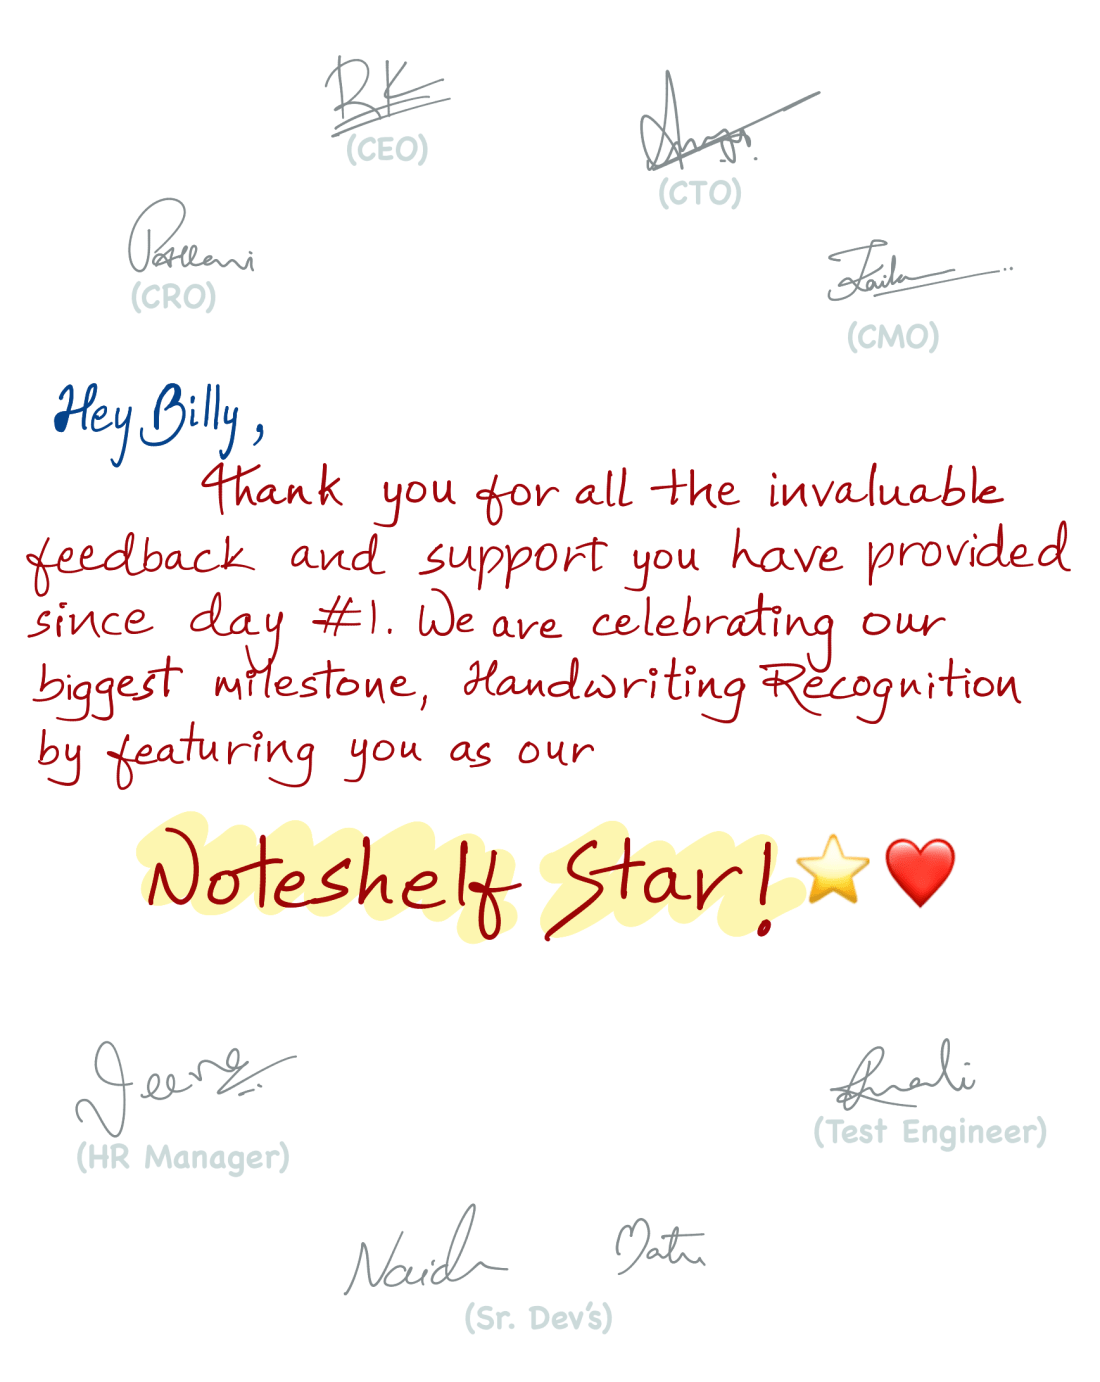 Thank you note to Billy Abrams Noteshelf Star